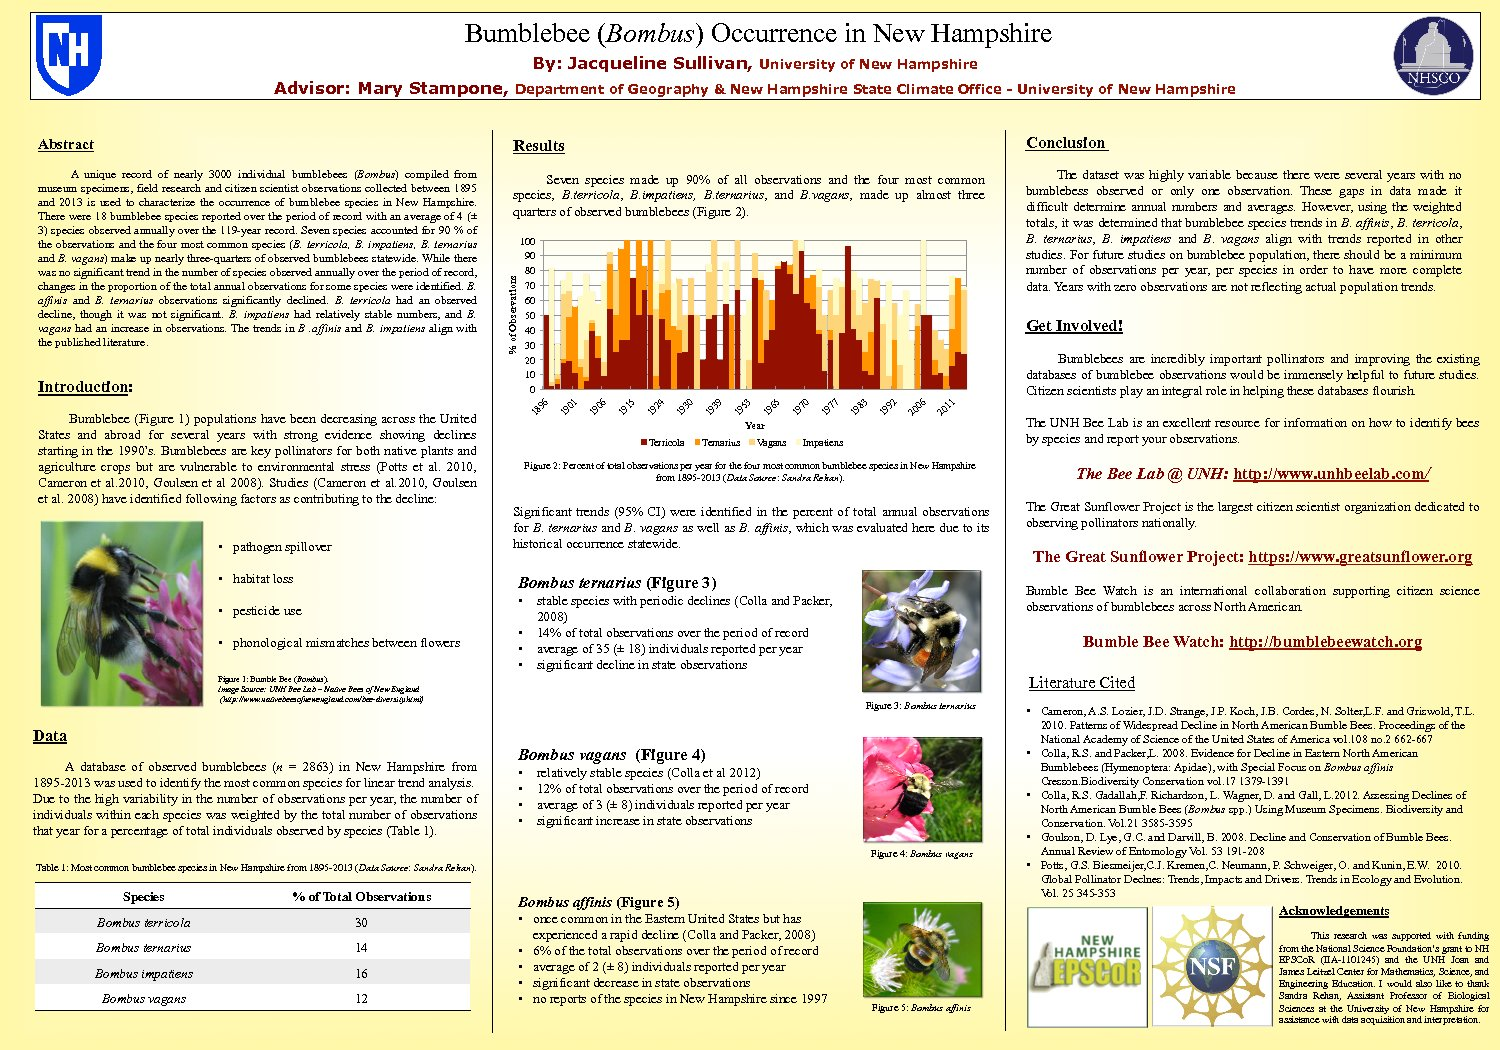 Bumblebee (Bombus) Occurrence In New Hampshire by mdb48